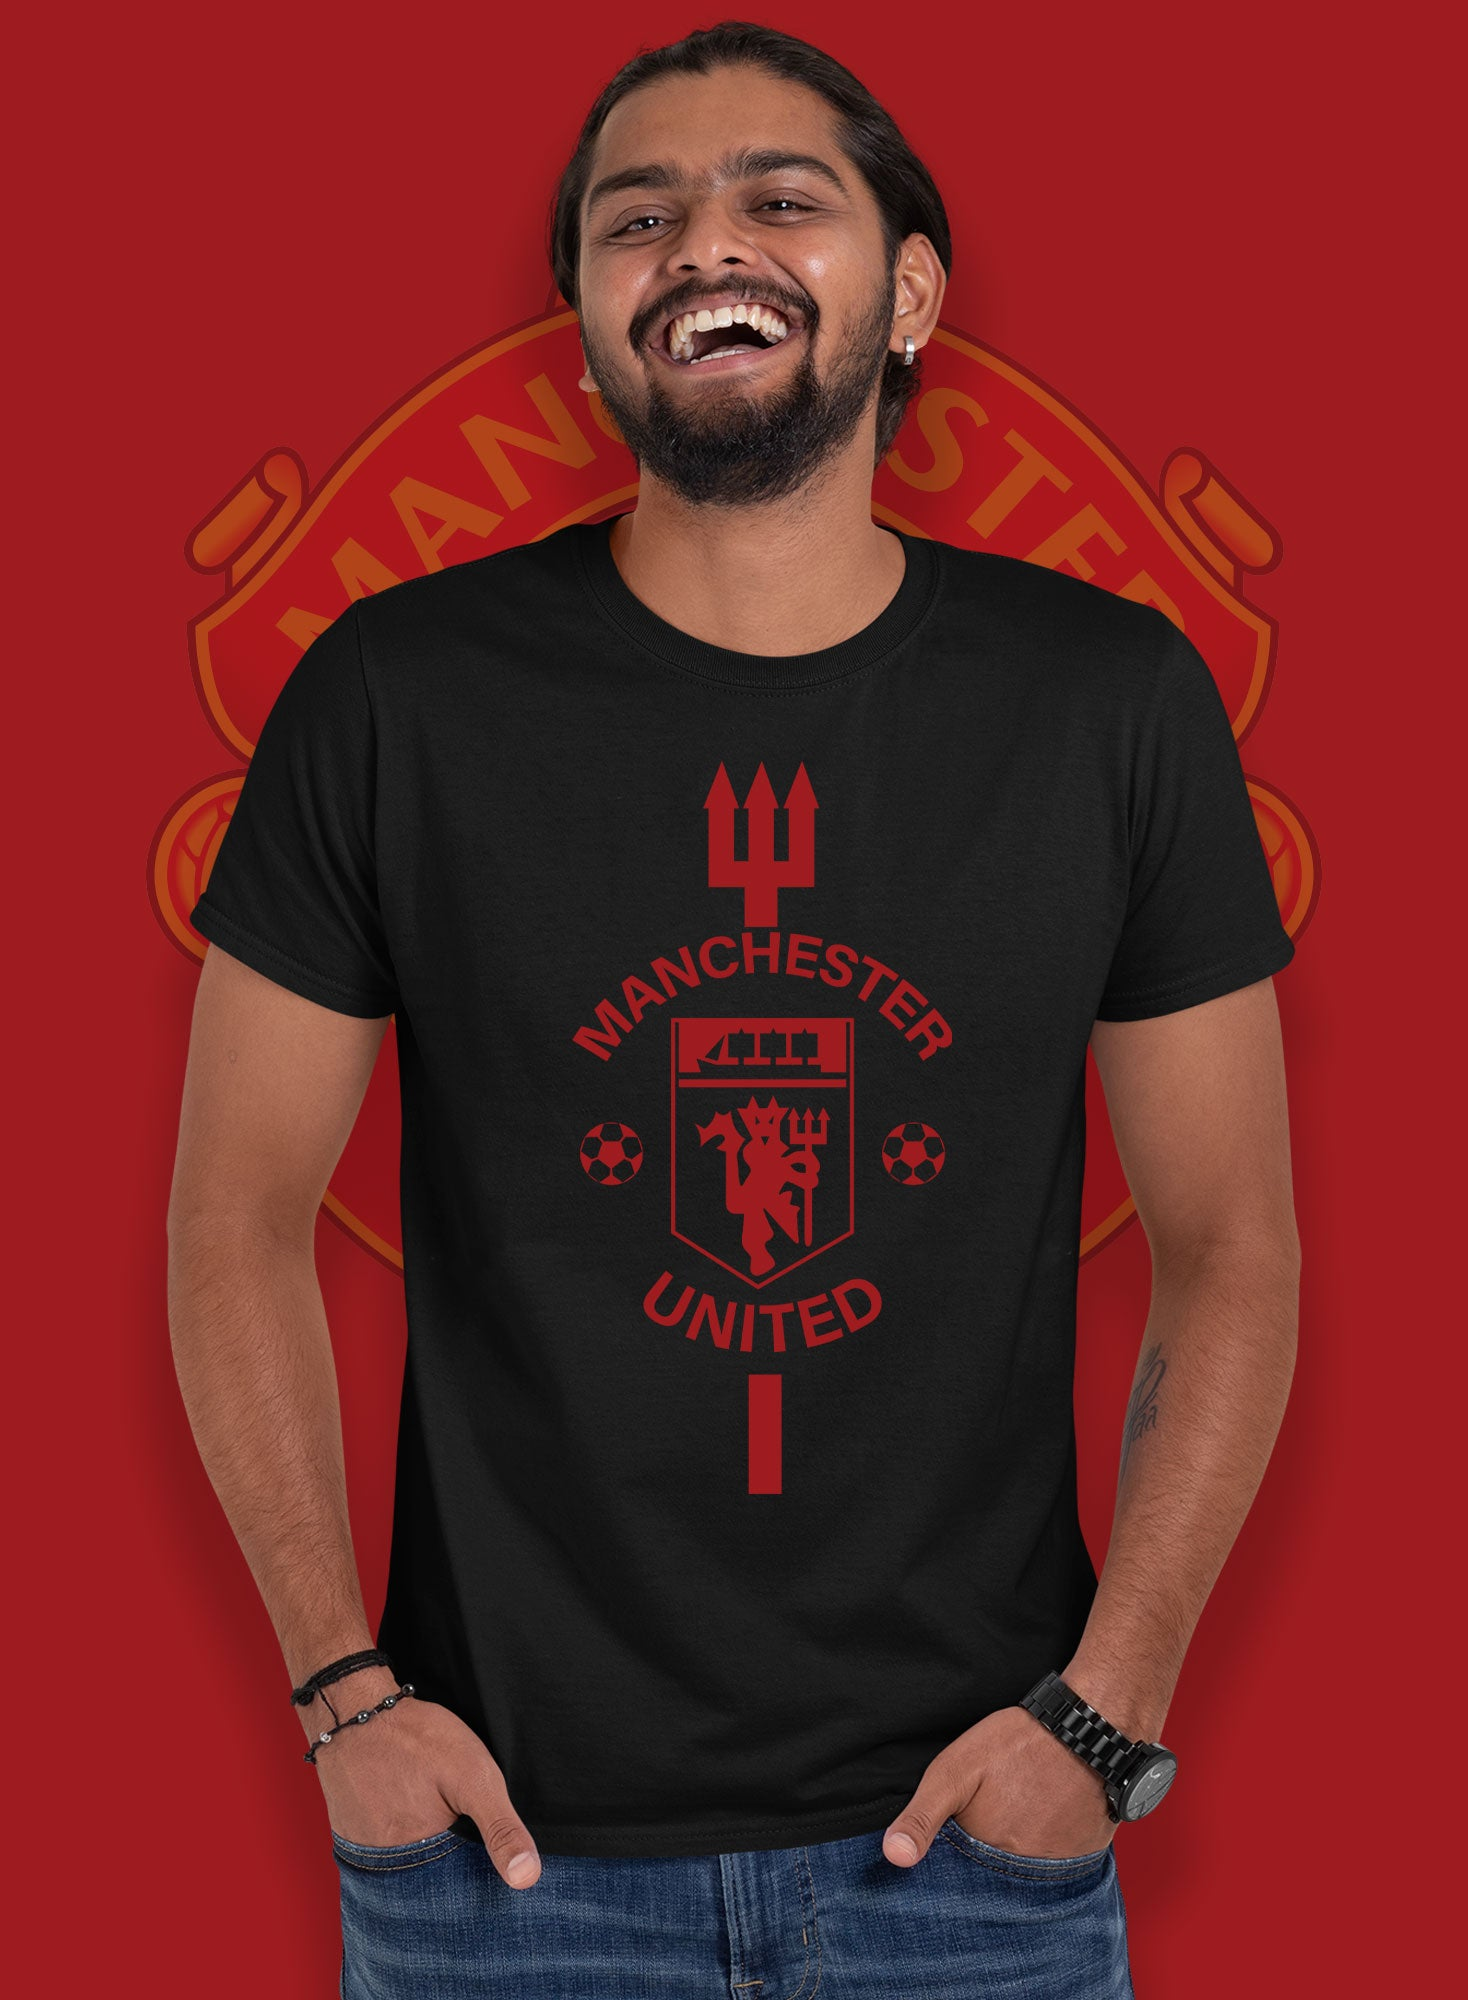 Manchester United T-shirts